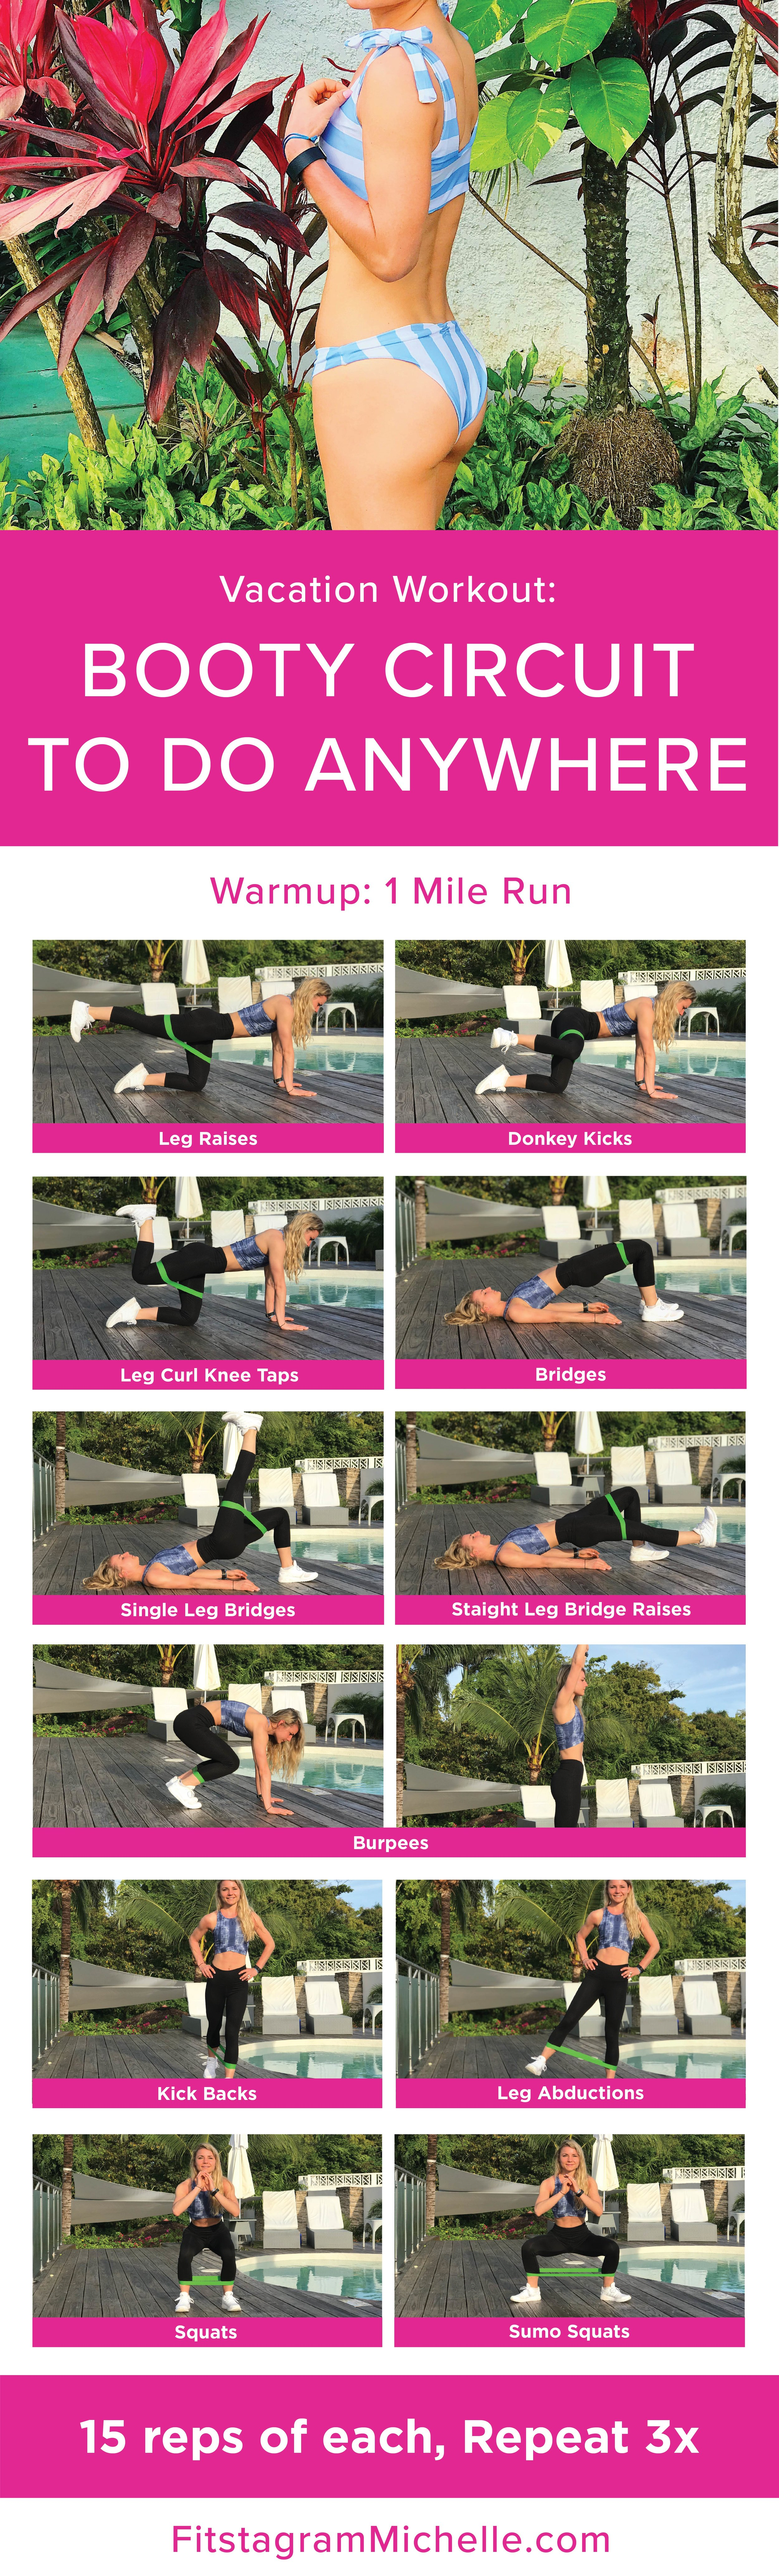 Booty Band Circuit to do on vacation. No equipment needed.